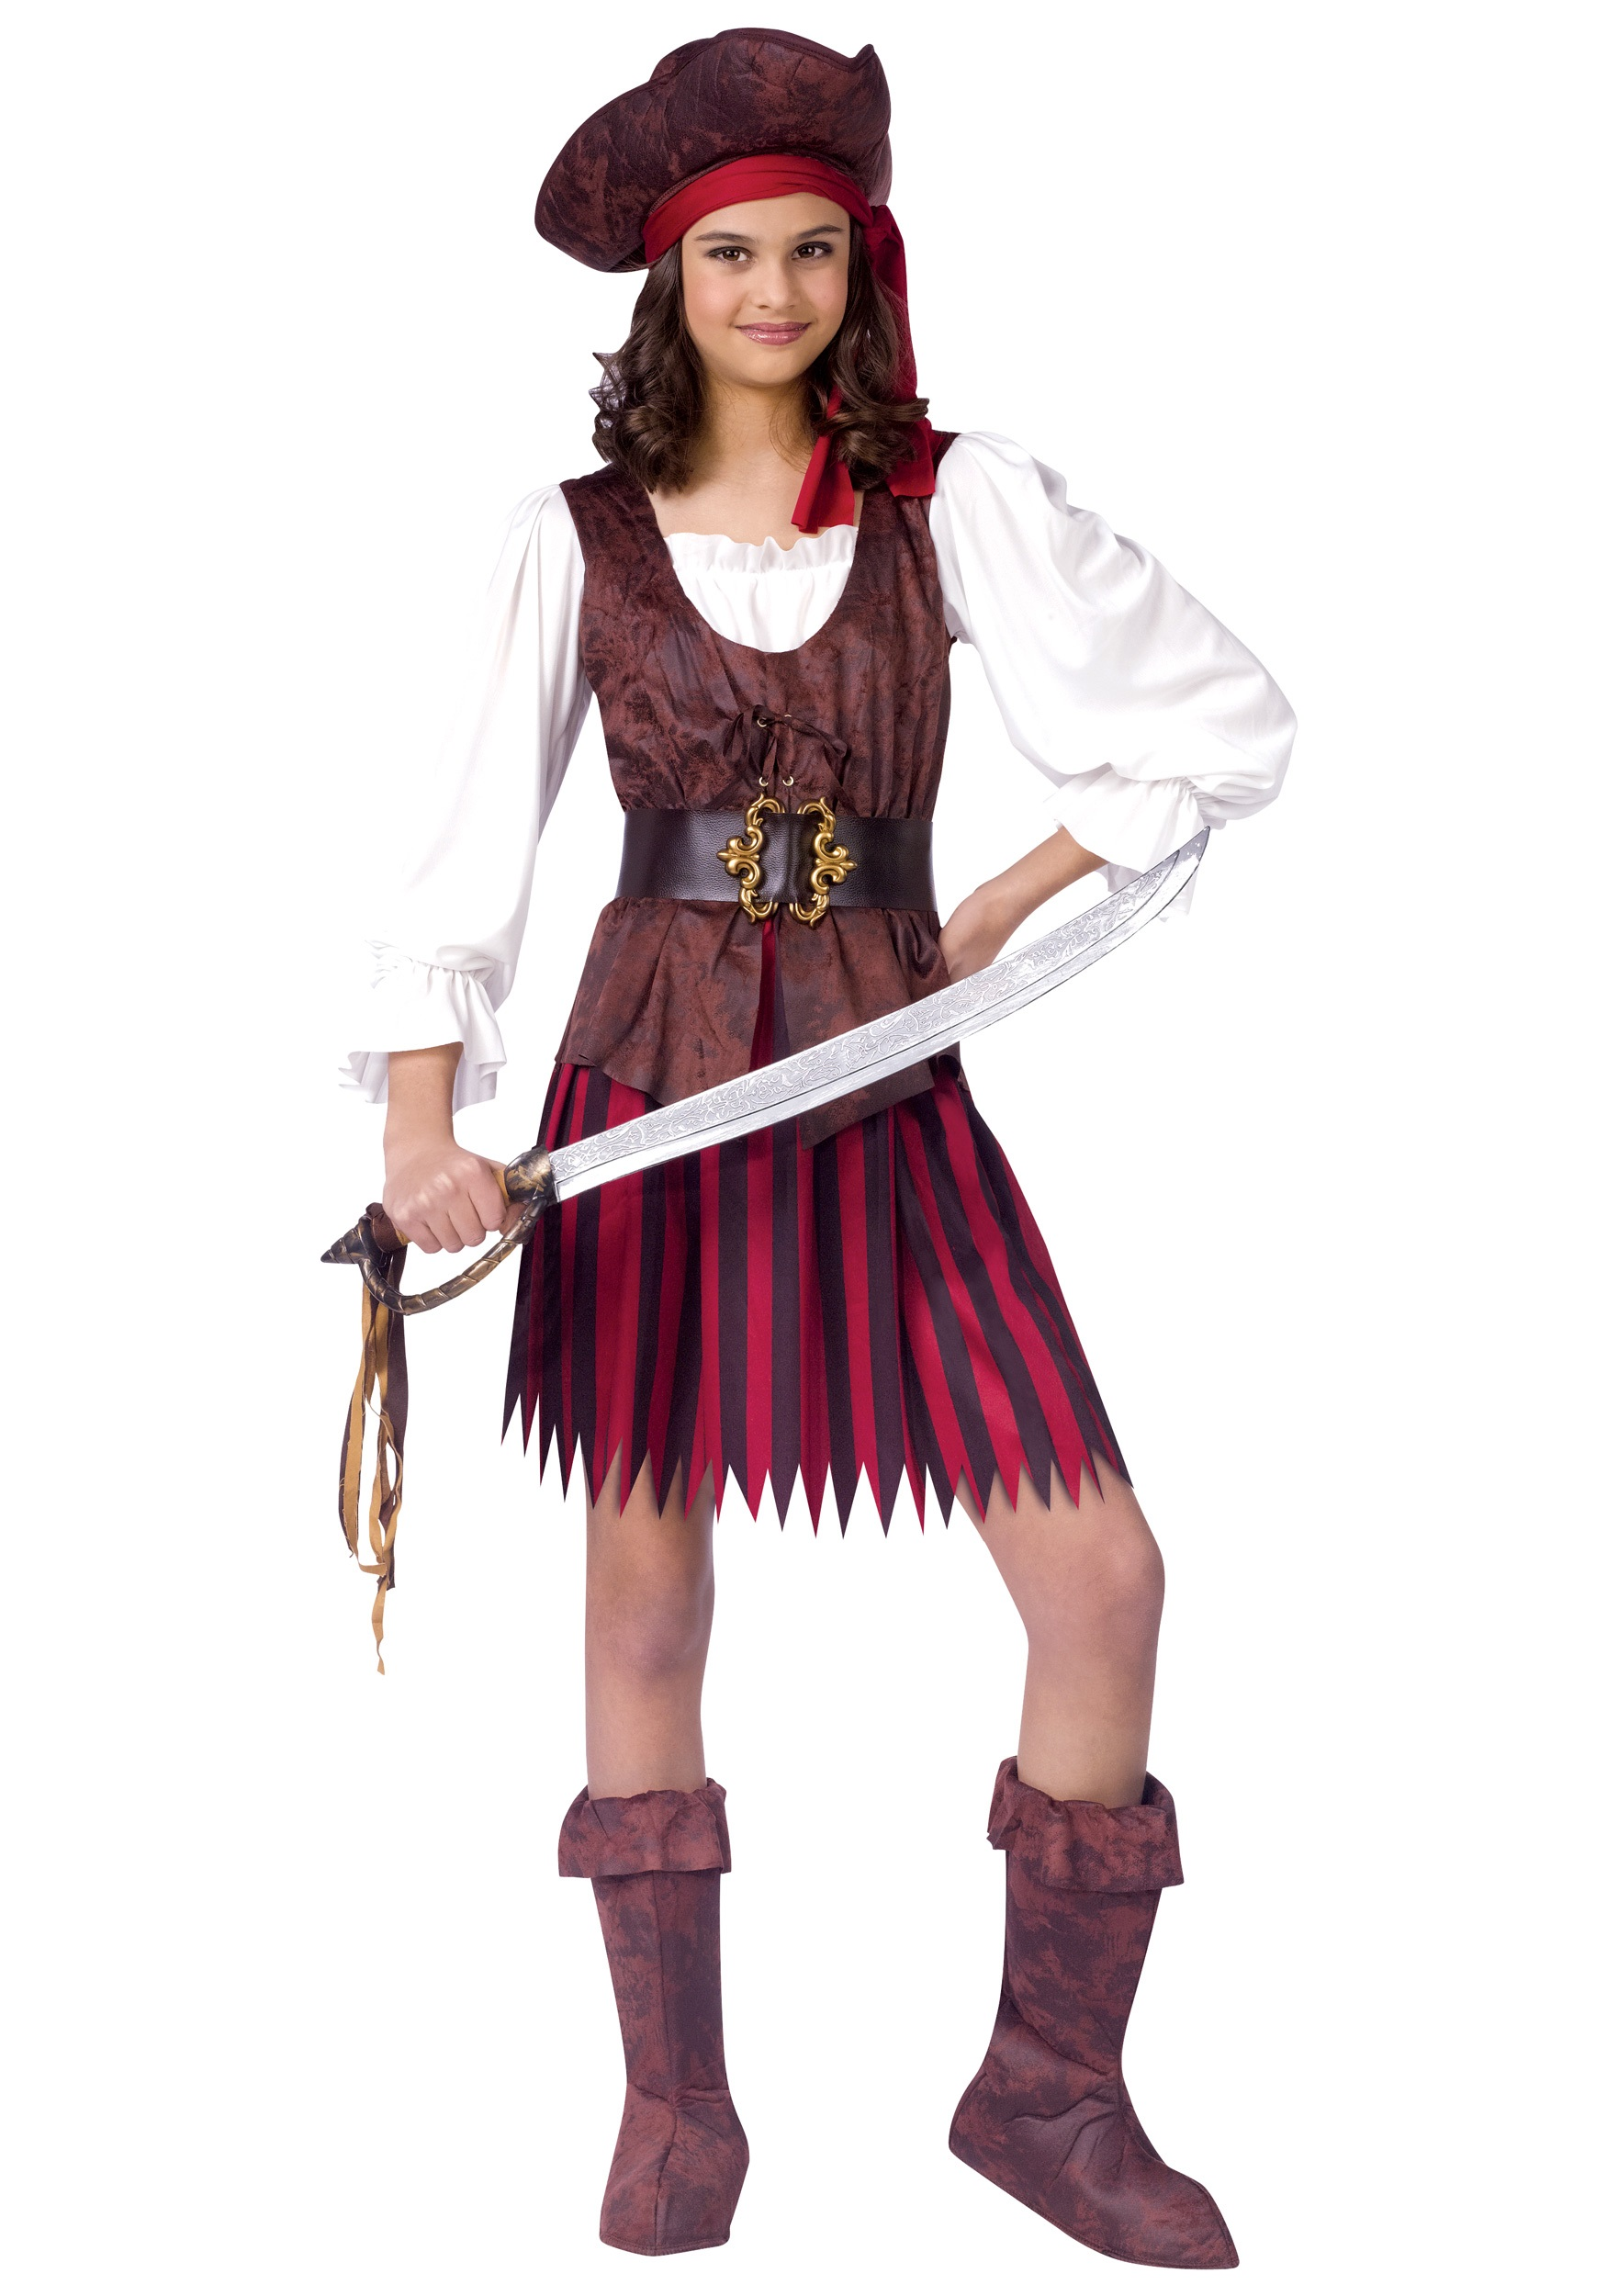 Pirate girls images 47